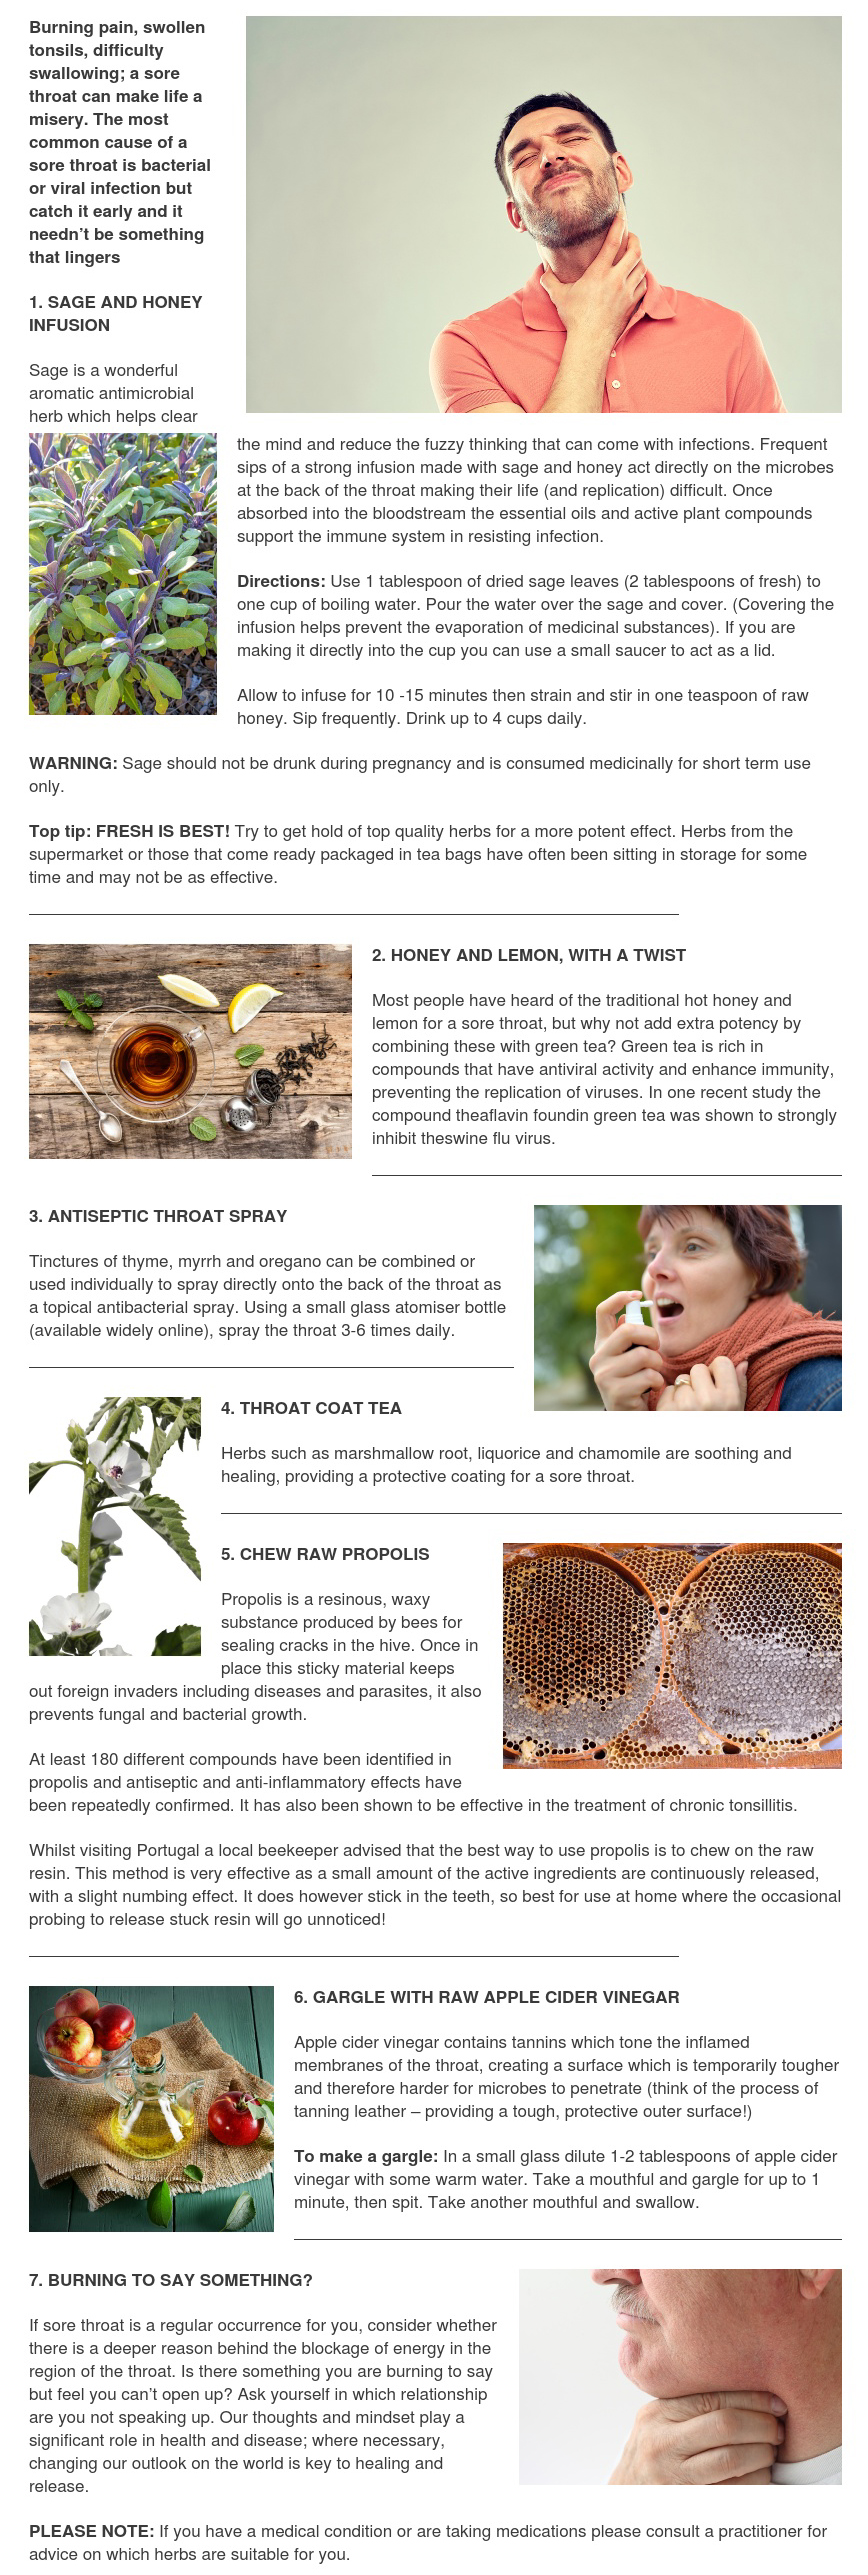 Seven Natural Ways to Soothe a Sore Throat - Herbal Clinic